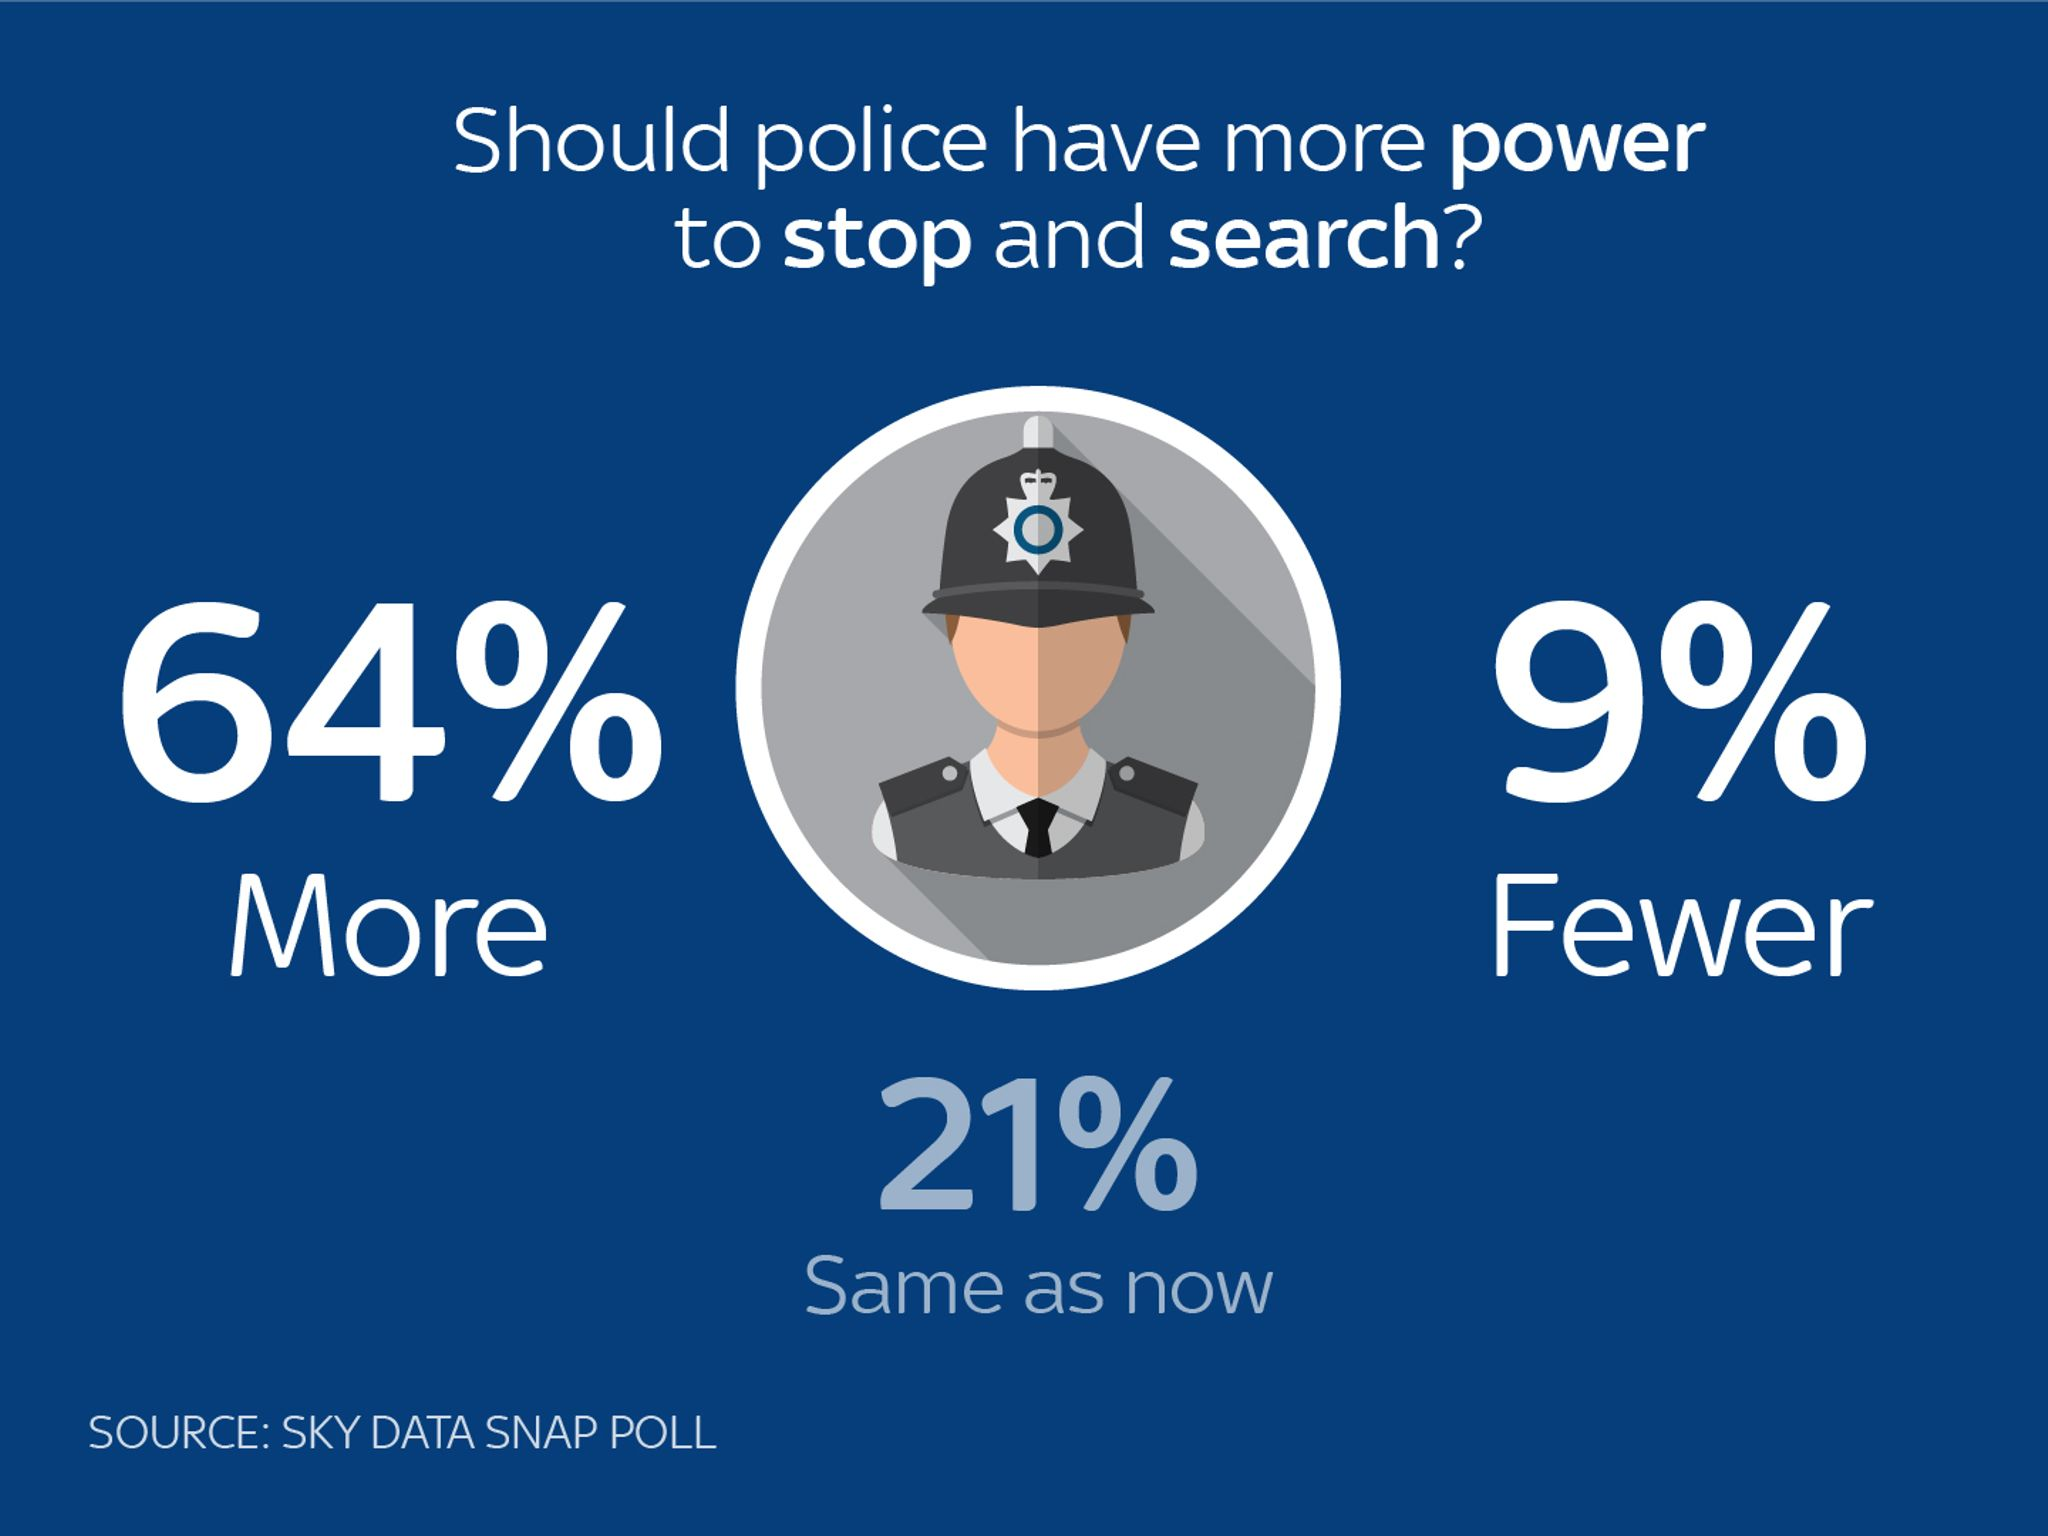 should police have more power Police need power in order to enforce law, without it we'd be living in a country with no laws, no boundaries and it would be chaos a state of anarchy wouldn't achieve anything, we'd basically turn into barbarians and to want that you must have issues civilised society is made up of laws that need.